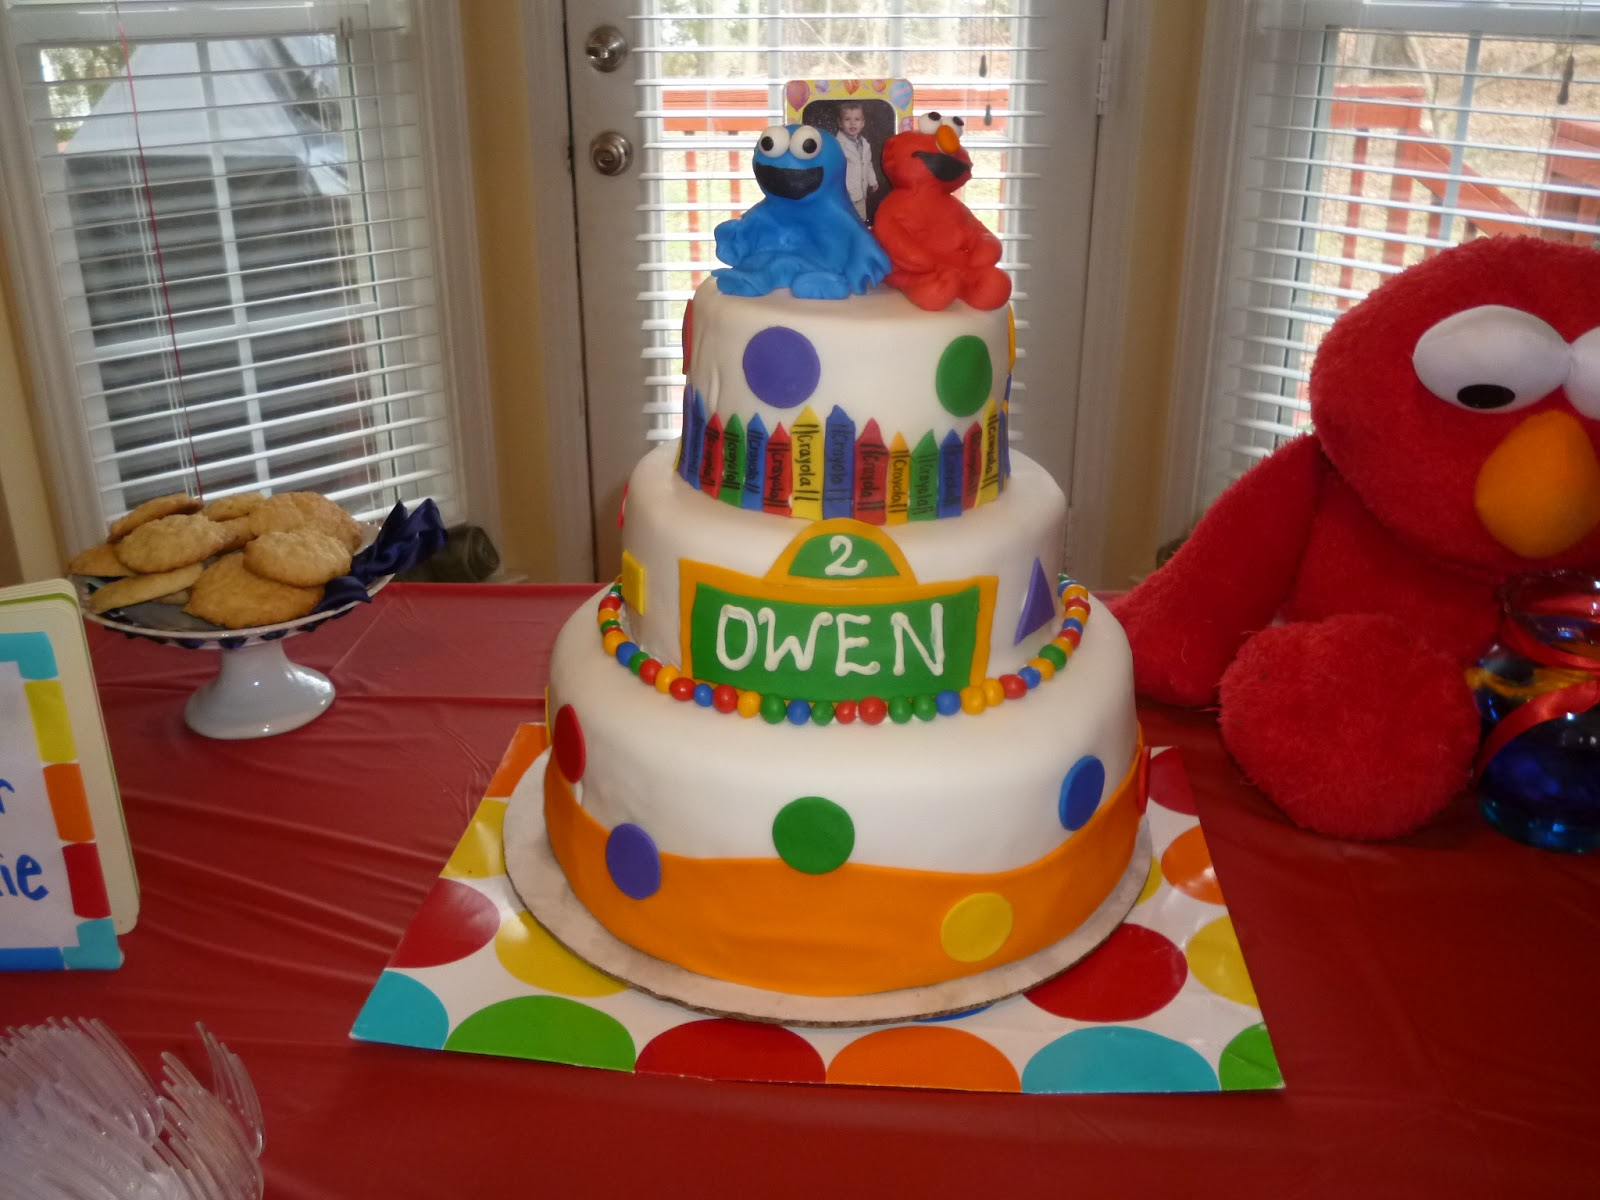 Birthday Cake Images For 2 Year Old Boy : Cakes with